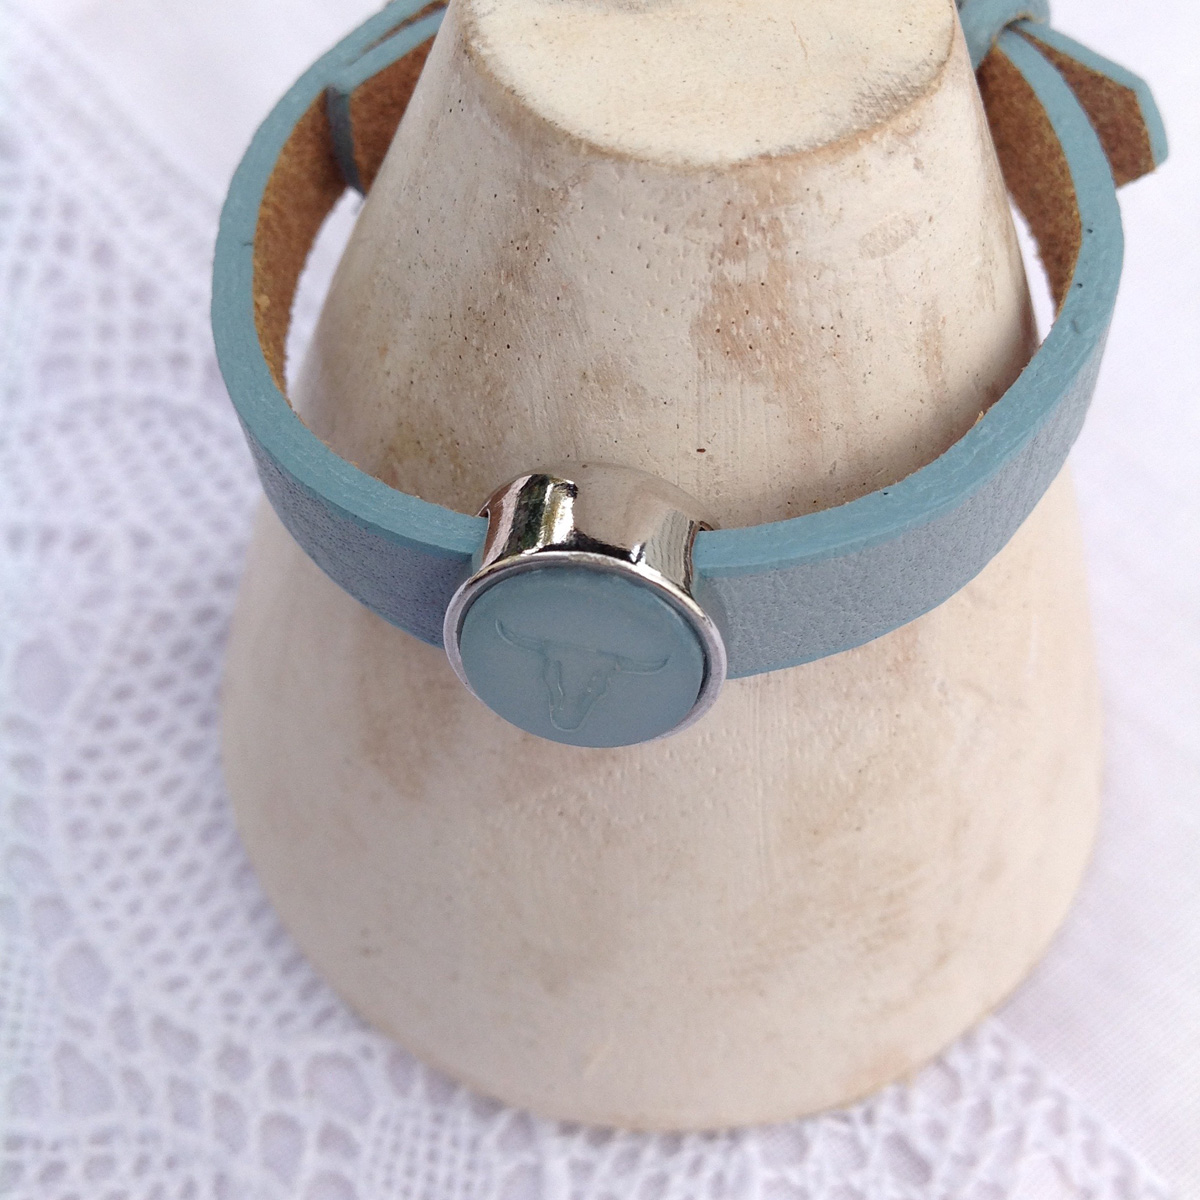 Lederarmband light blue mit Cabochon